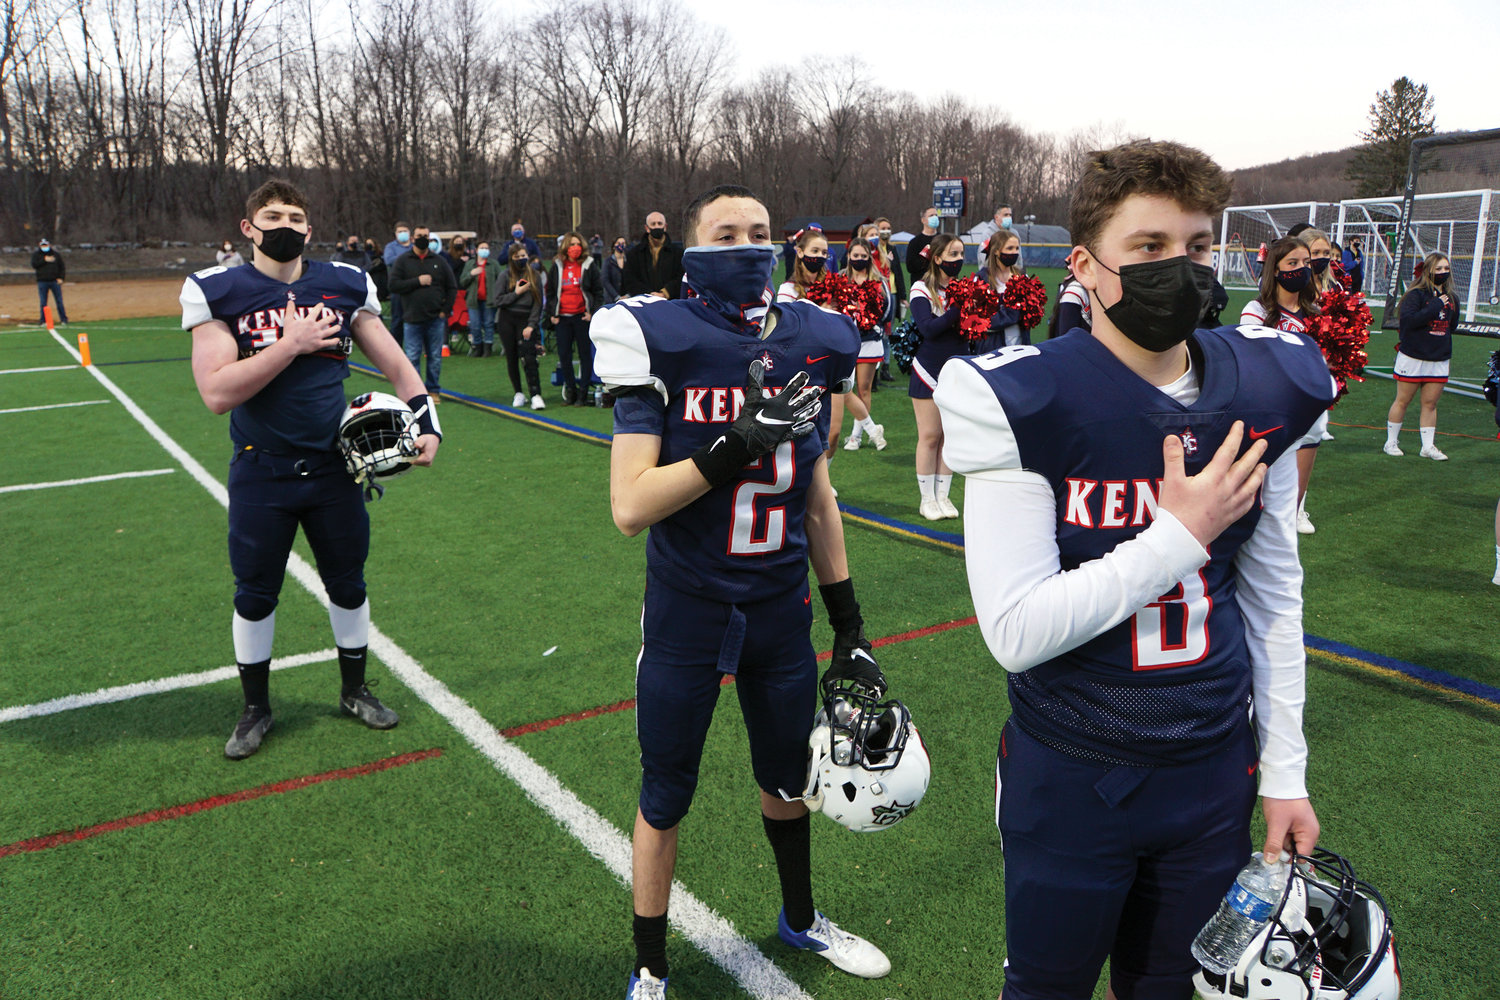 Bobby Piesco, Francisco Rivera and Carmine Calandrello stand for the National Anthem before John F. Kennedy Catholic Preparatory School and St. Dominic High School kicked off the football season in Somers March 12.